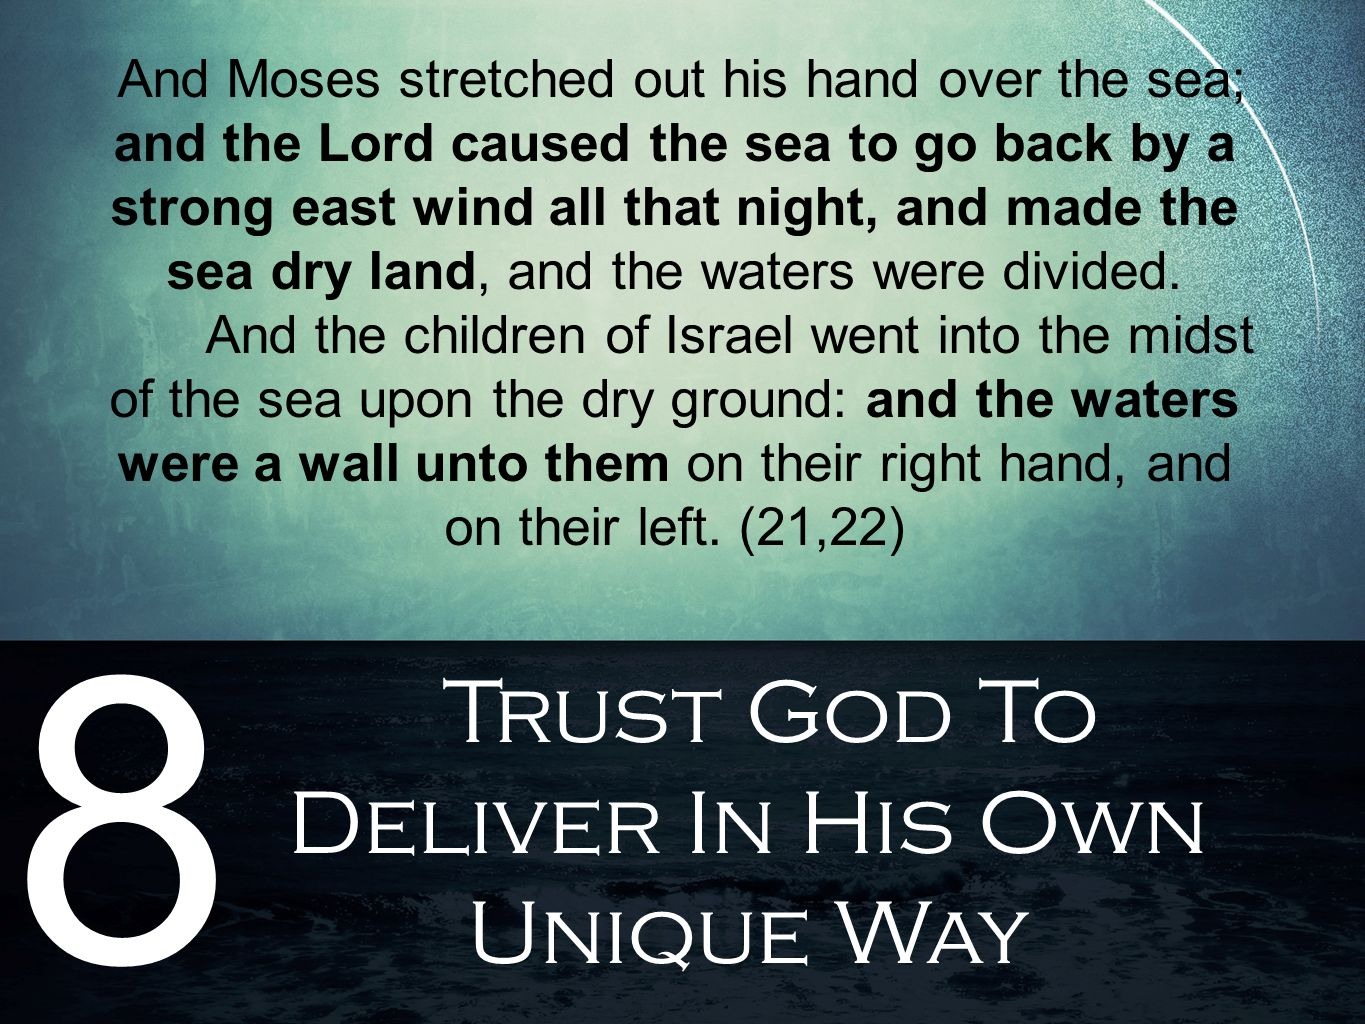 Trust God To Deliver In His Own Unique Way 8 And Moses stretched out his hand over the sea; and the Lord caused the sea to go back by a strong east wind all that night, and made the sea dry land, and the waters were divided.